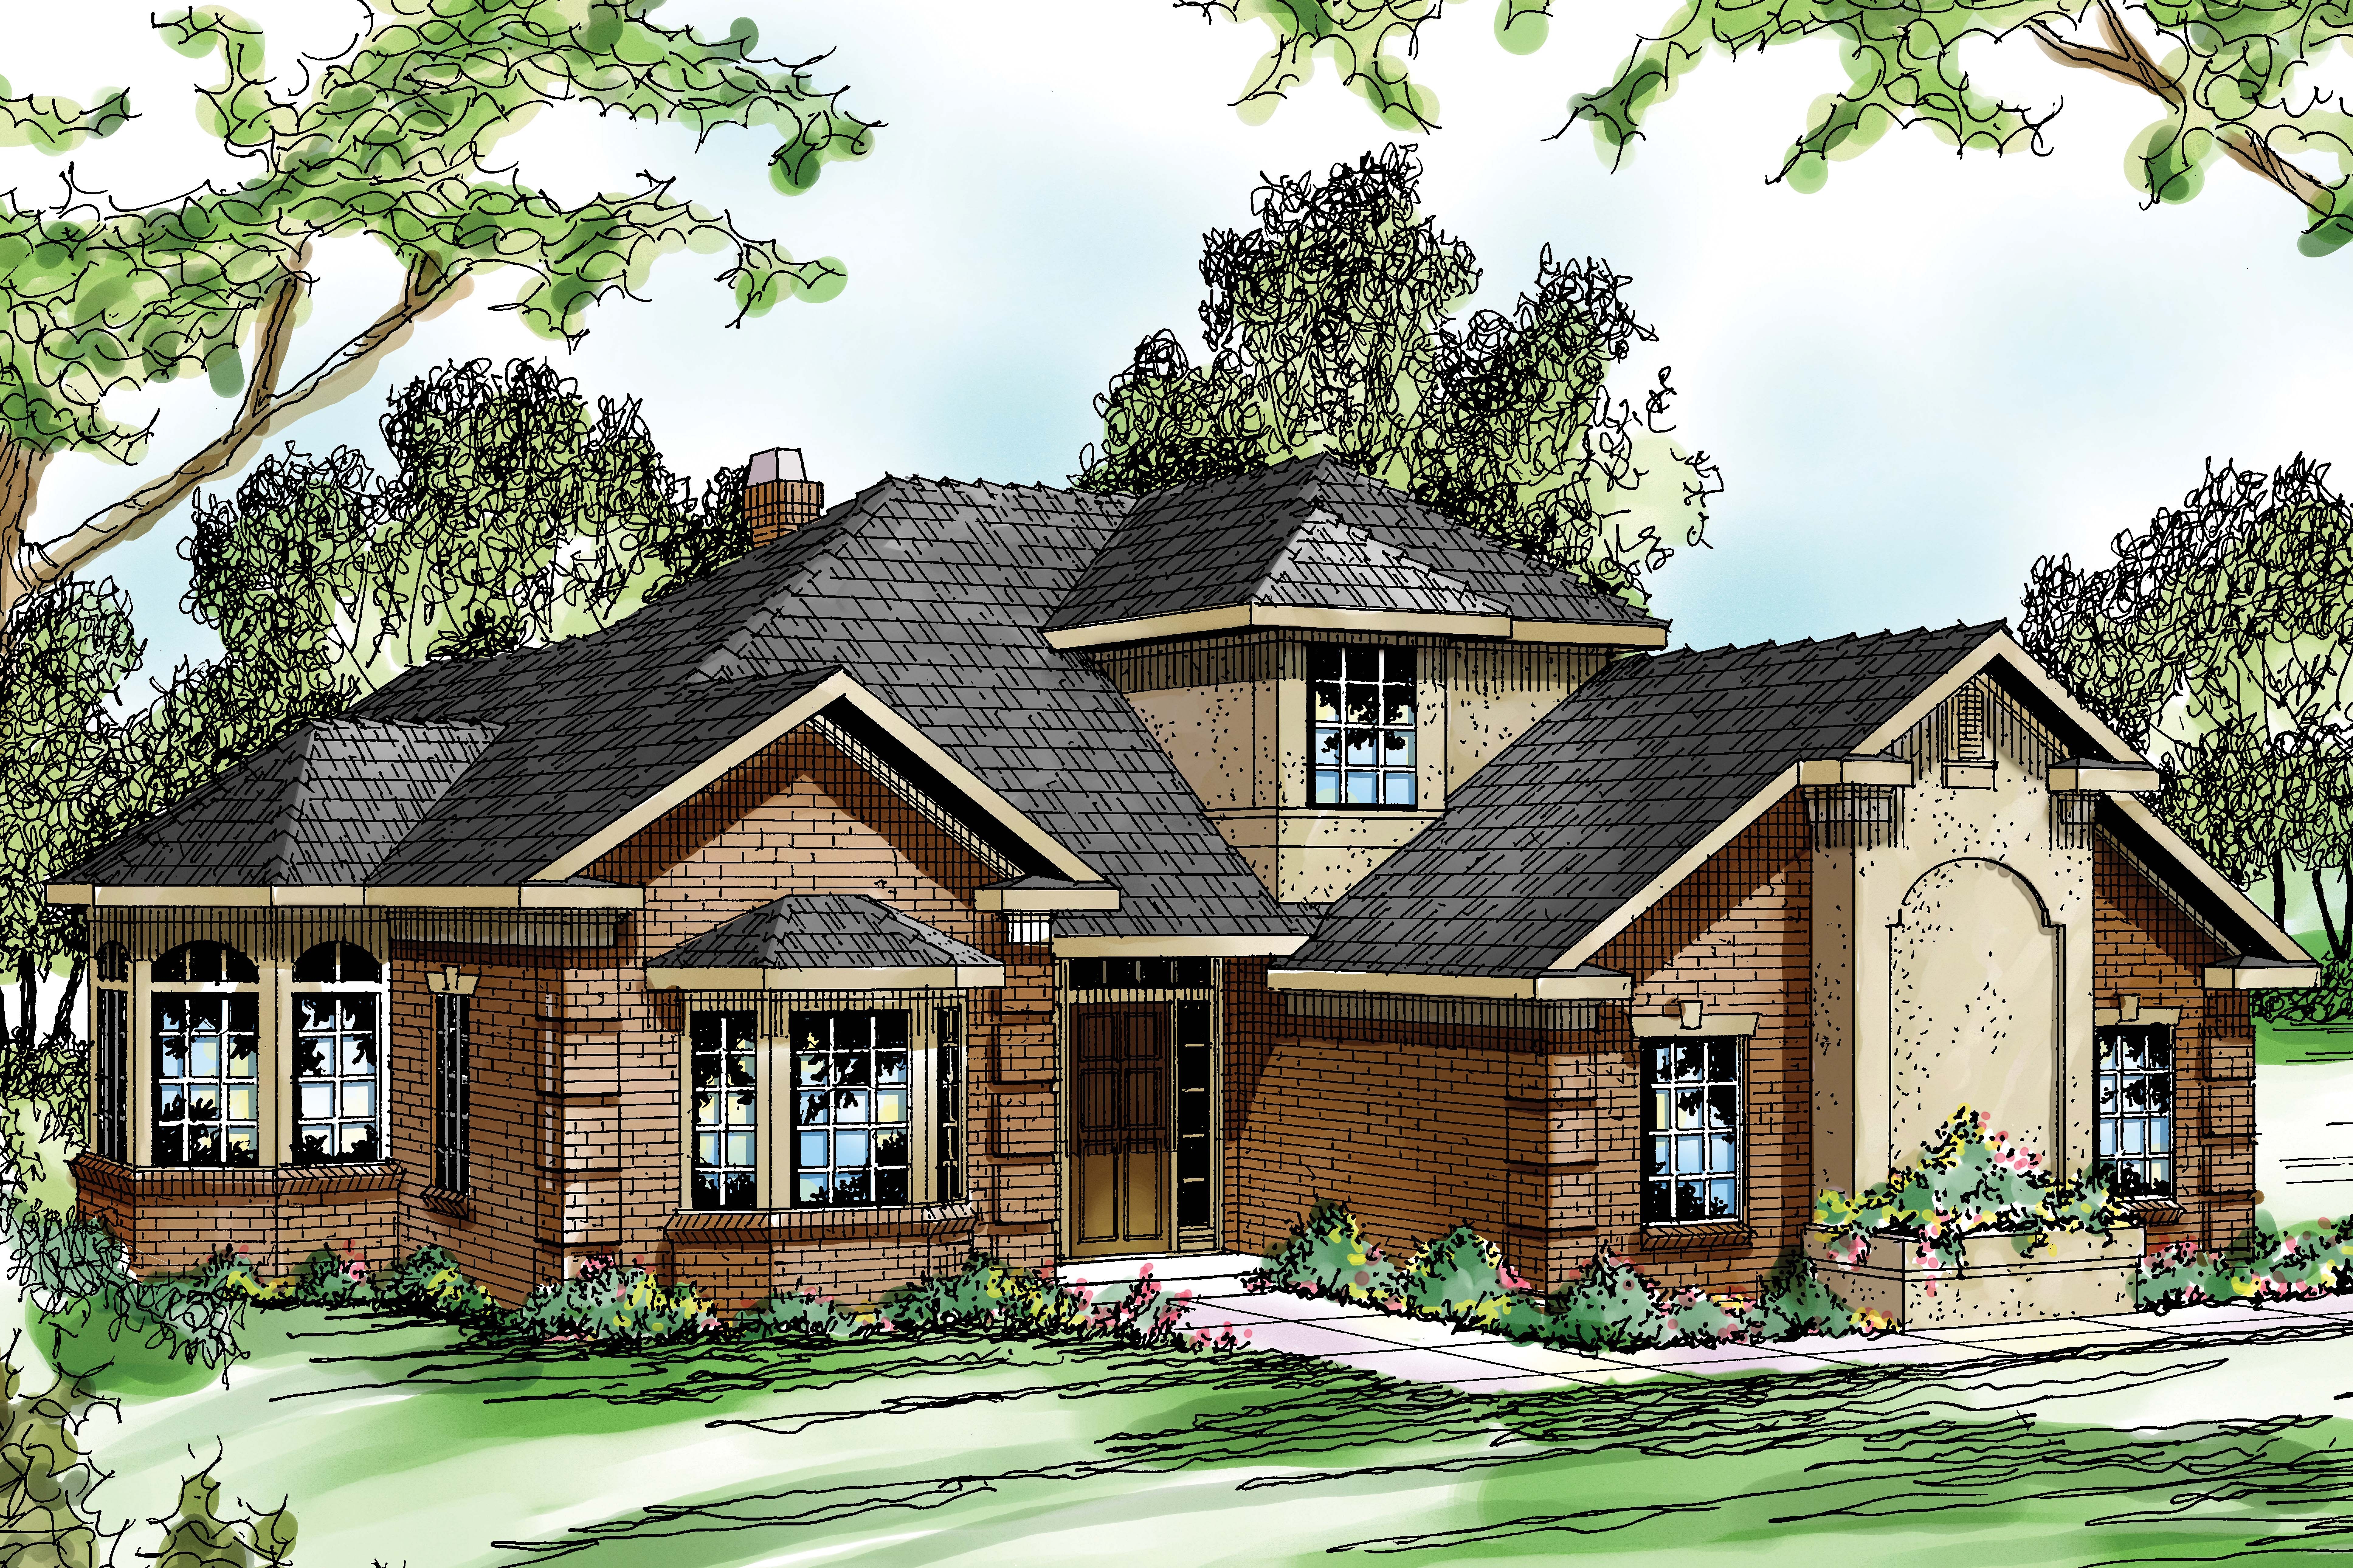 Traditional house plans wichita 10 254 associated designs - Traditional home plans and designs ...